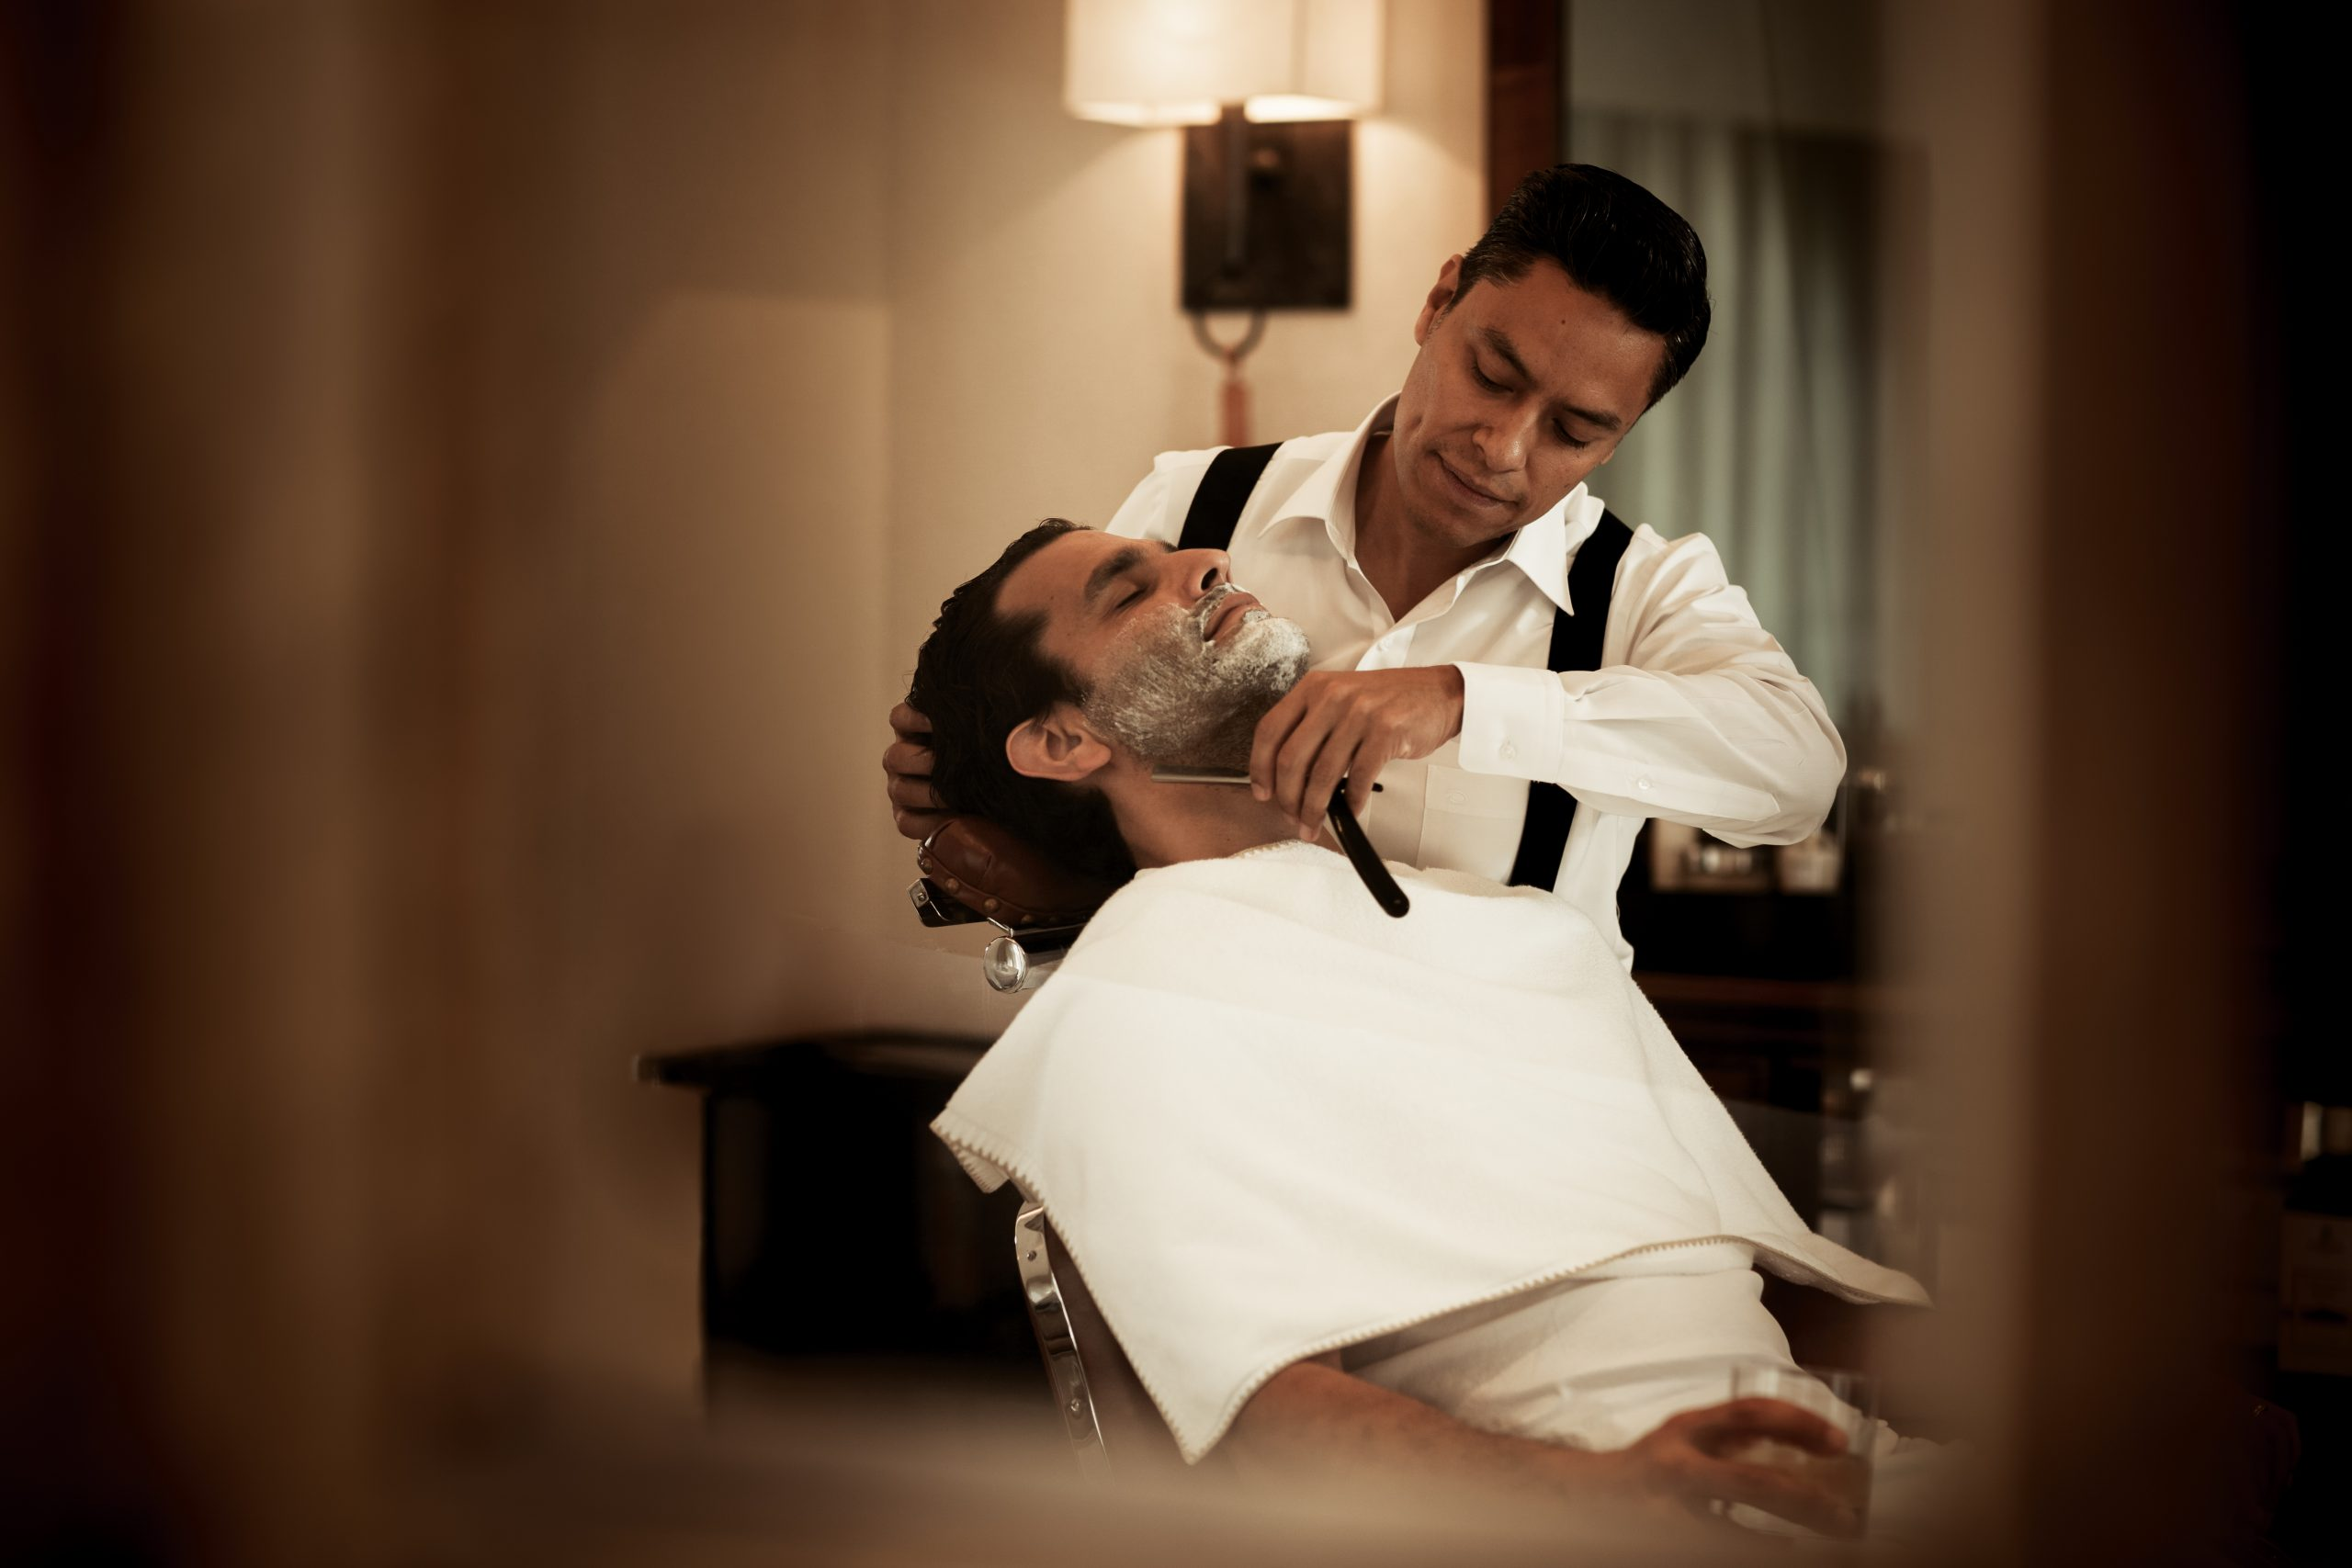 Missing Your Barber? Let One&Only Give You Their Tips for Male Grooming